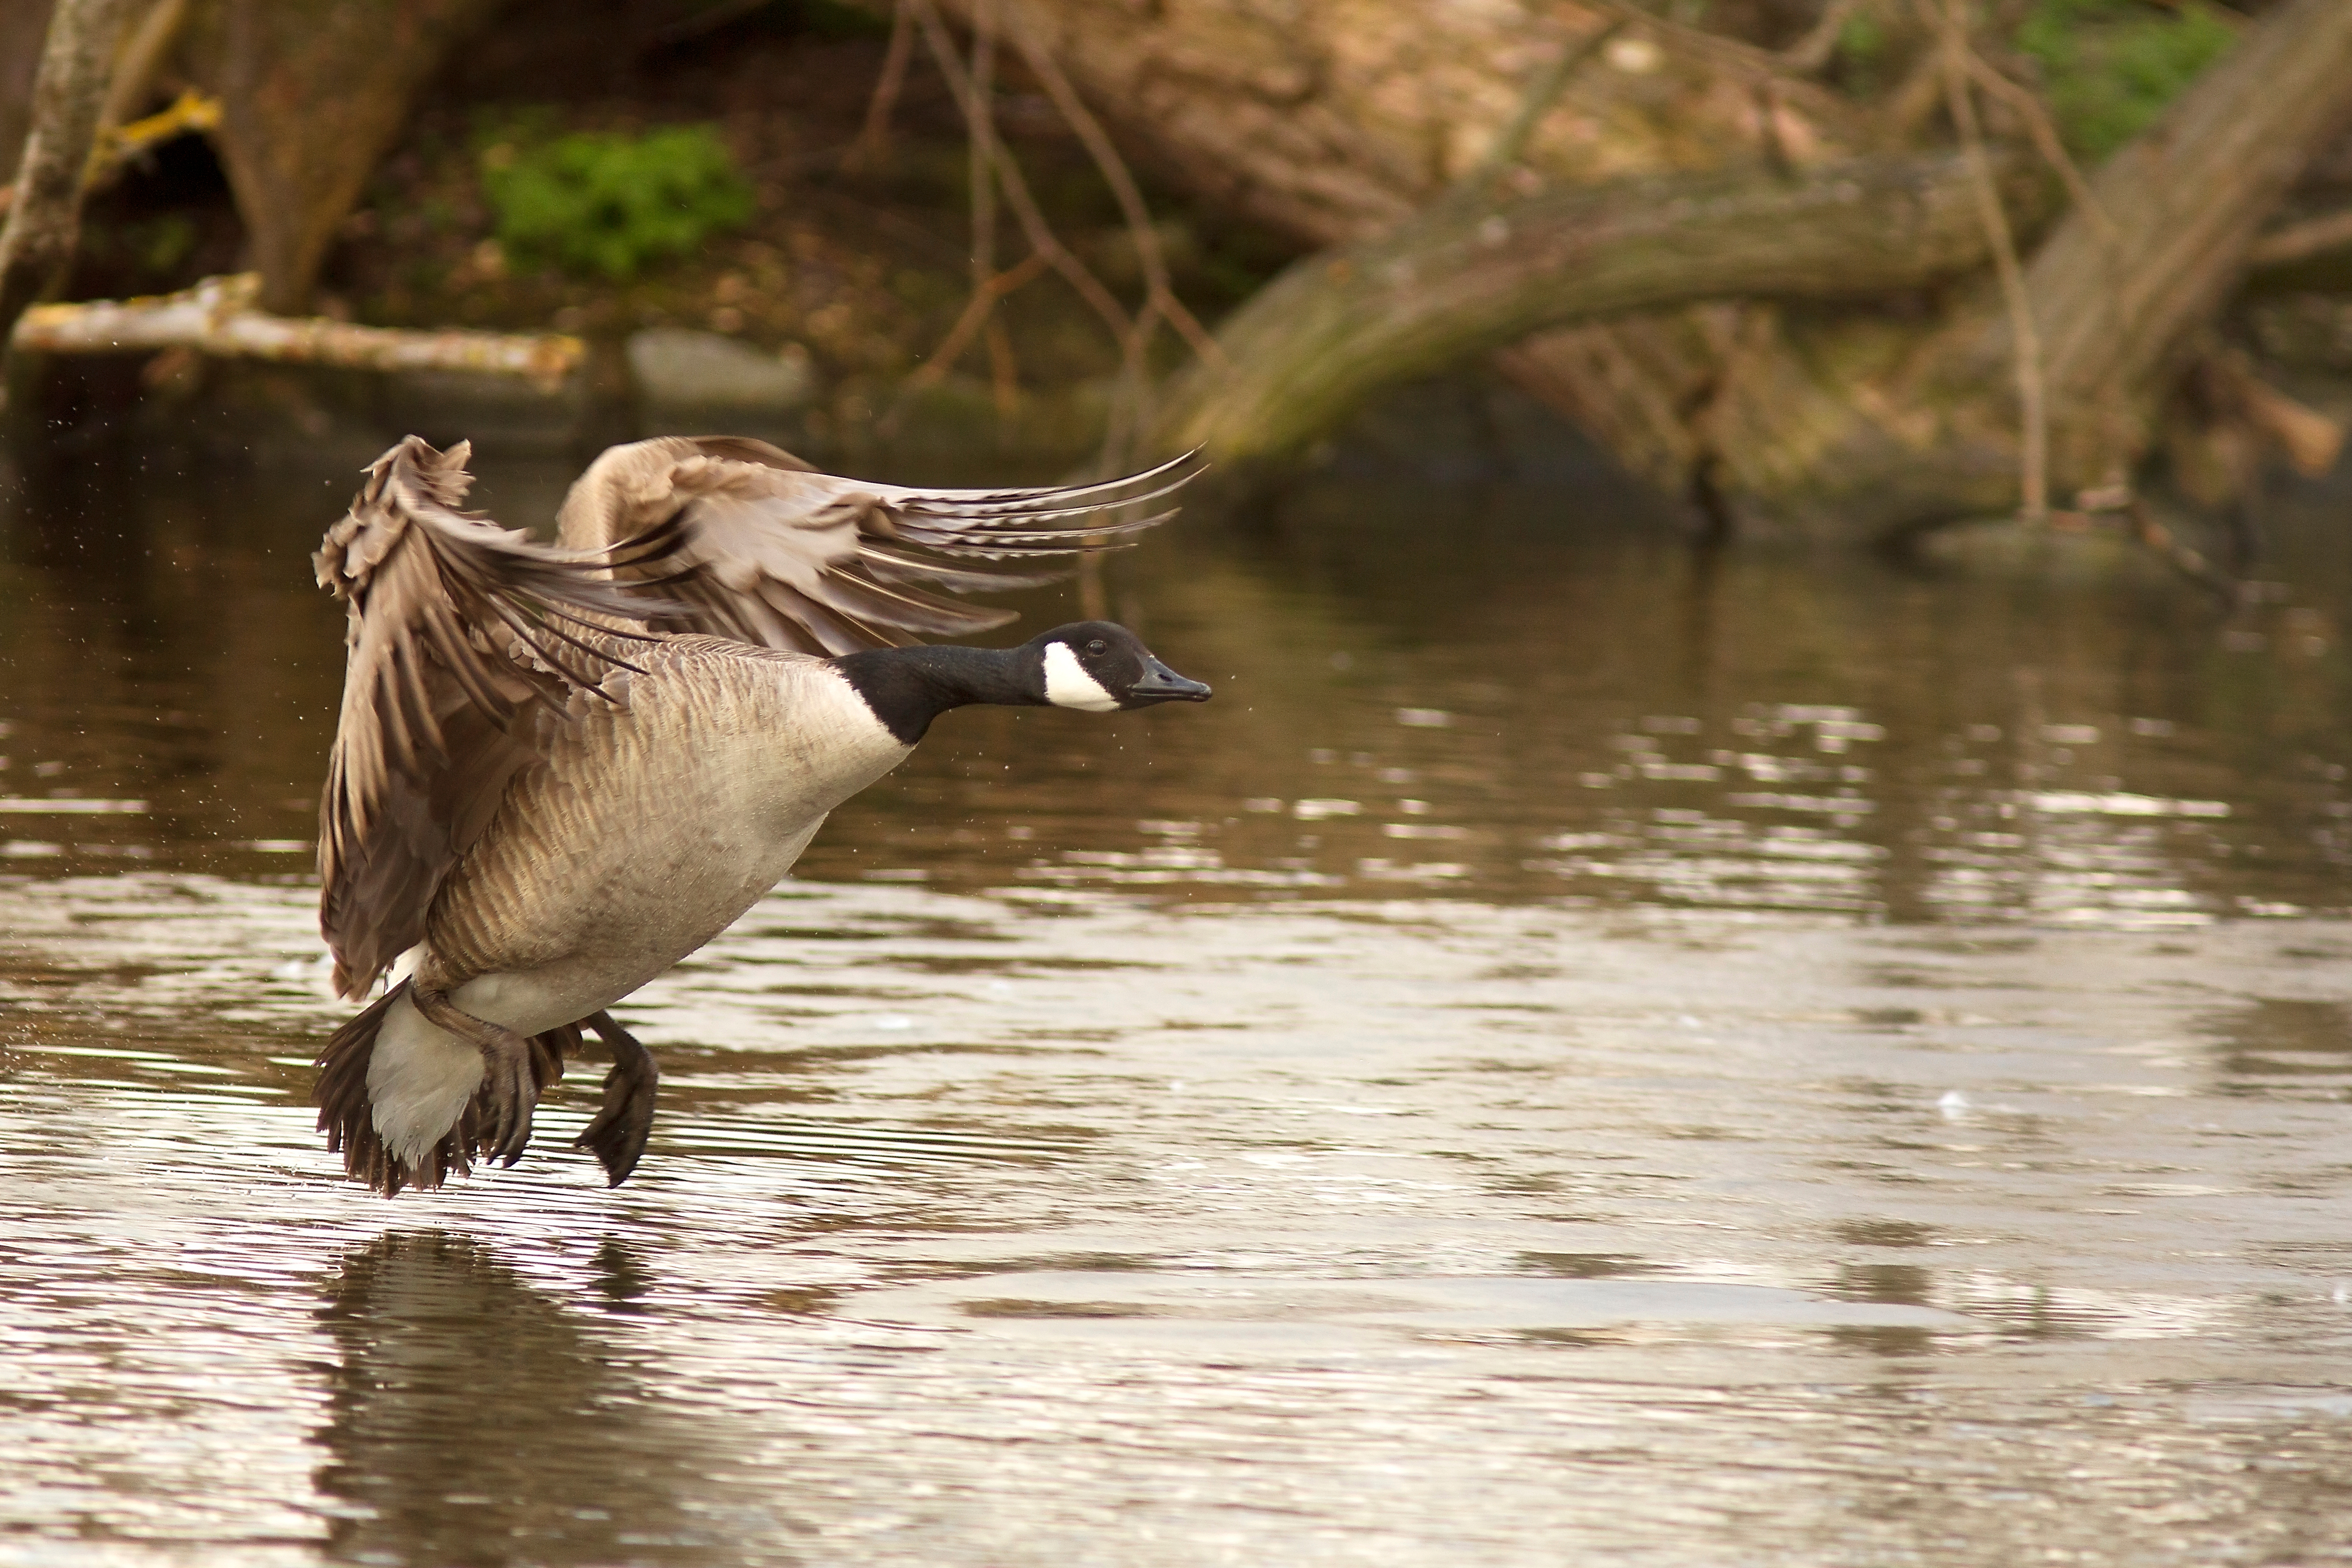 Goose flying over water on a goose hunting trip.g